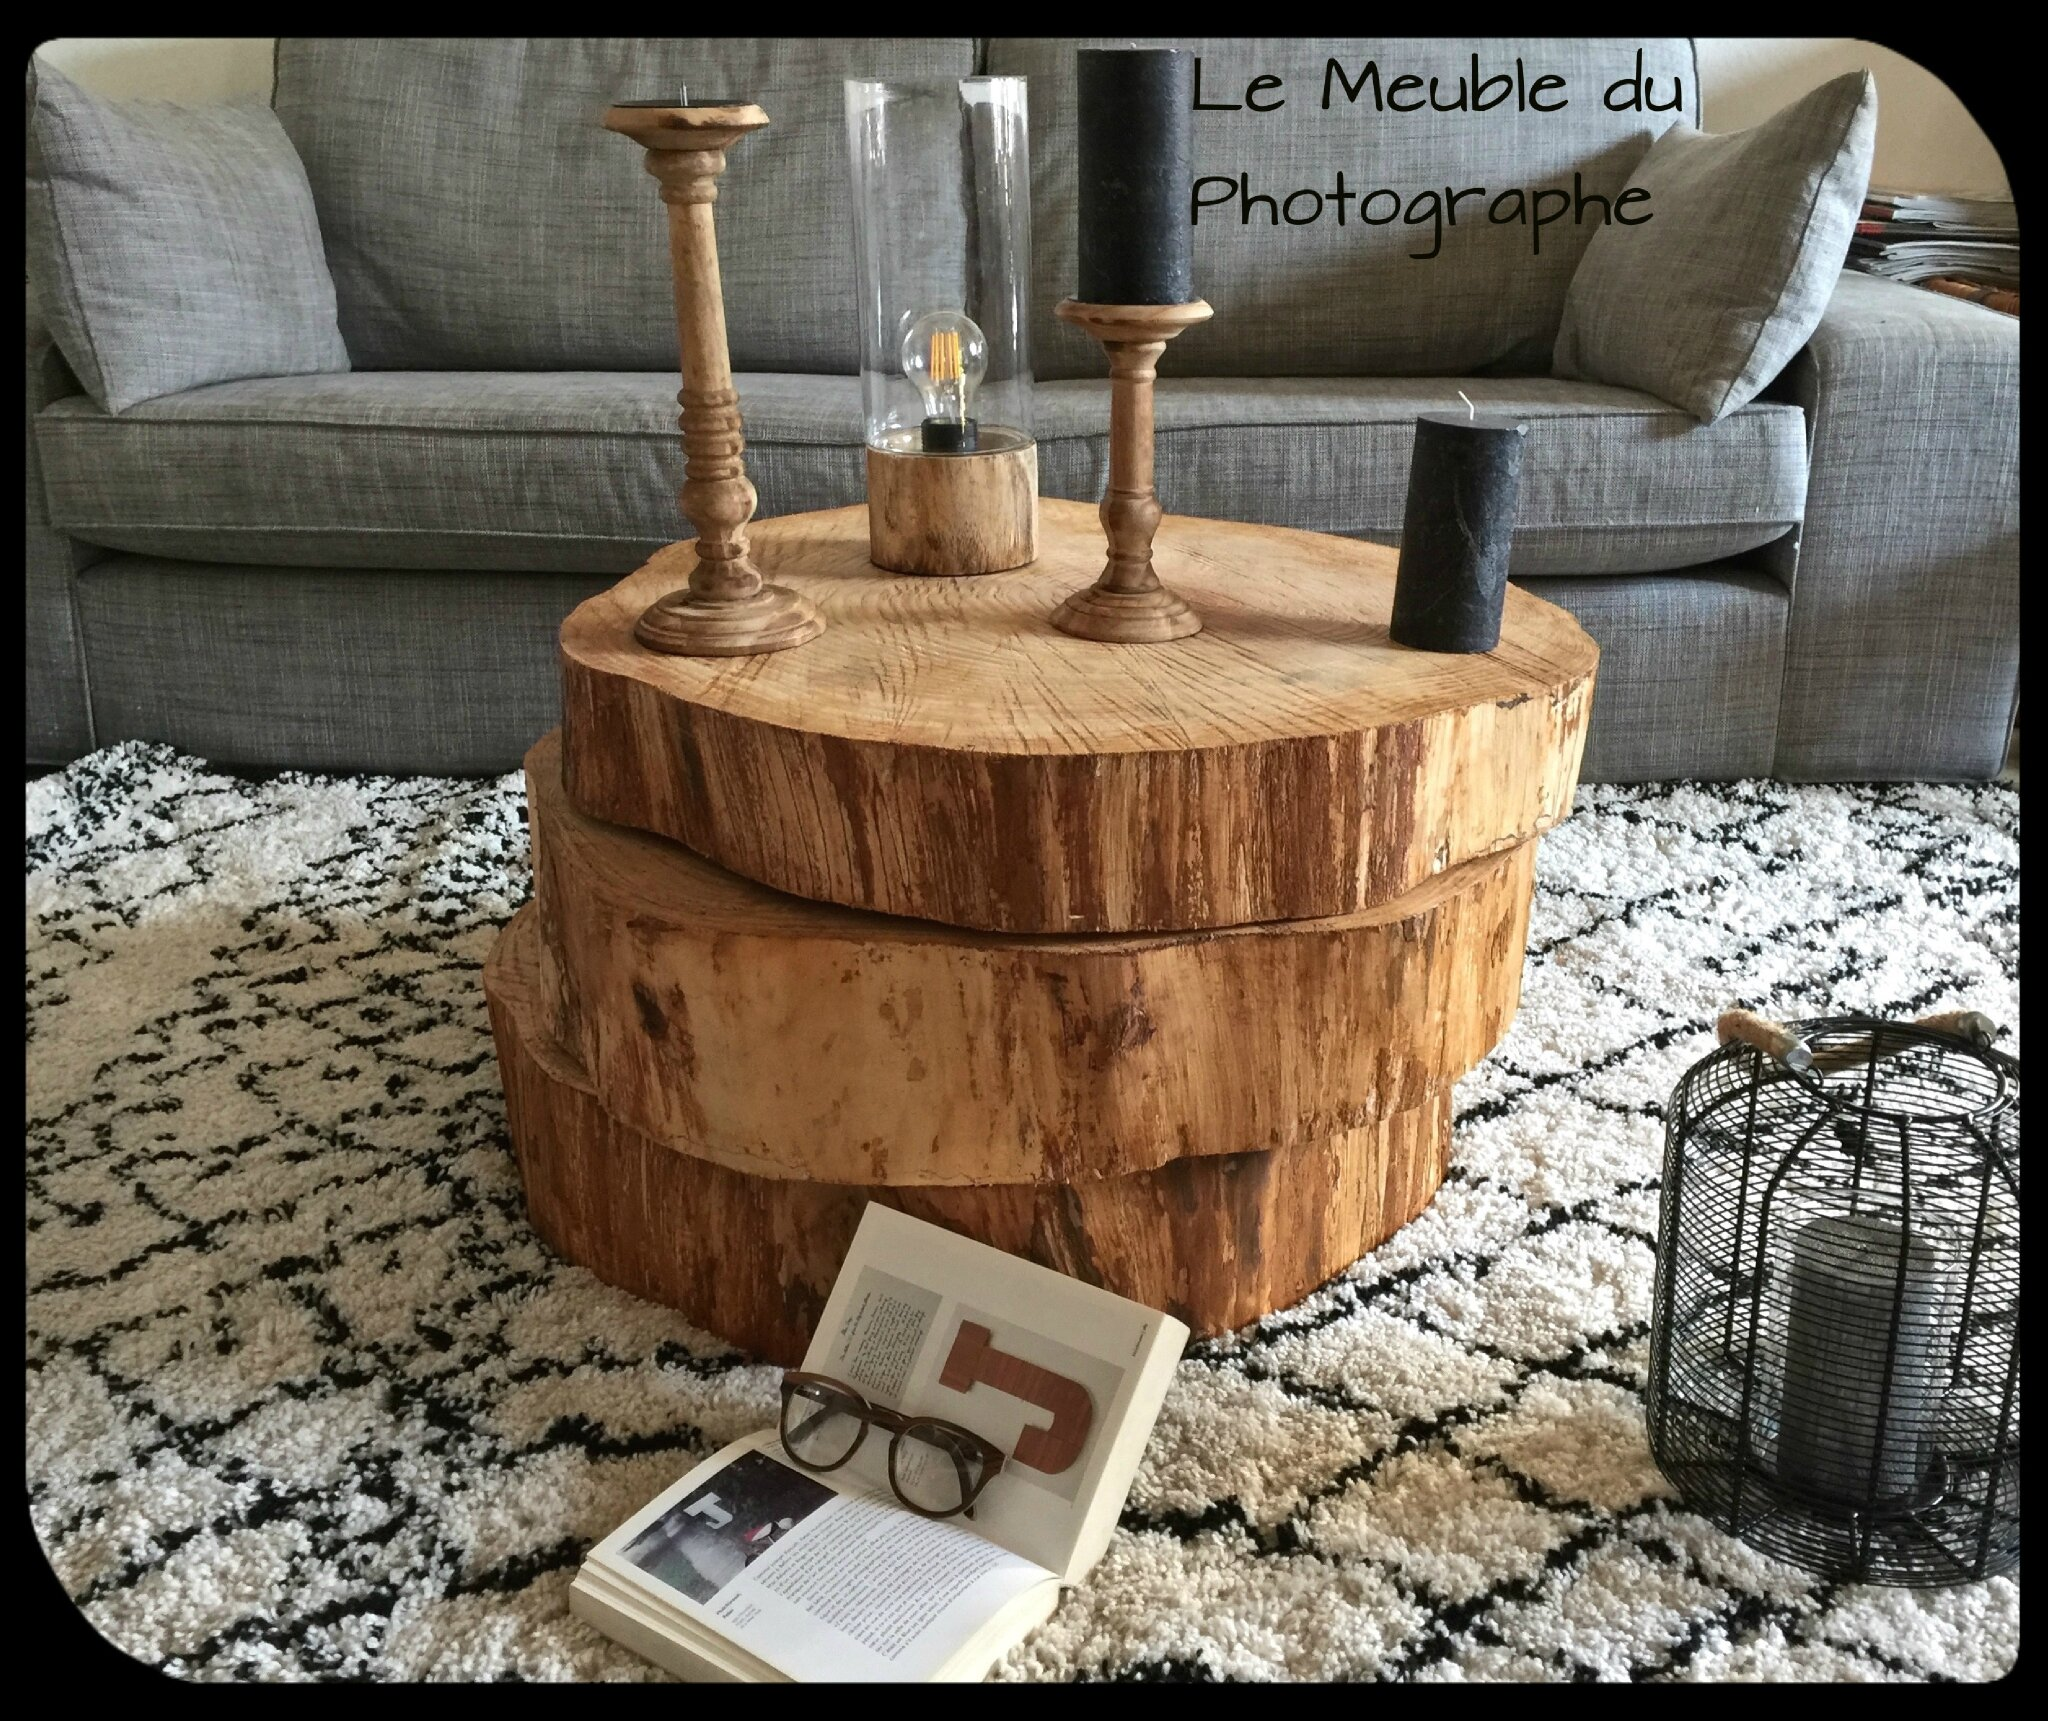 1 2 3 rondins font une table basse barbatruc et r cup for Le meuble du photographe